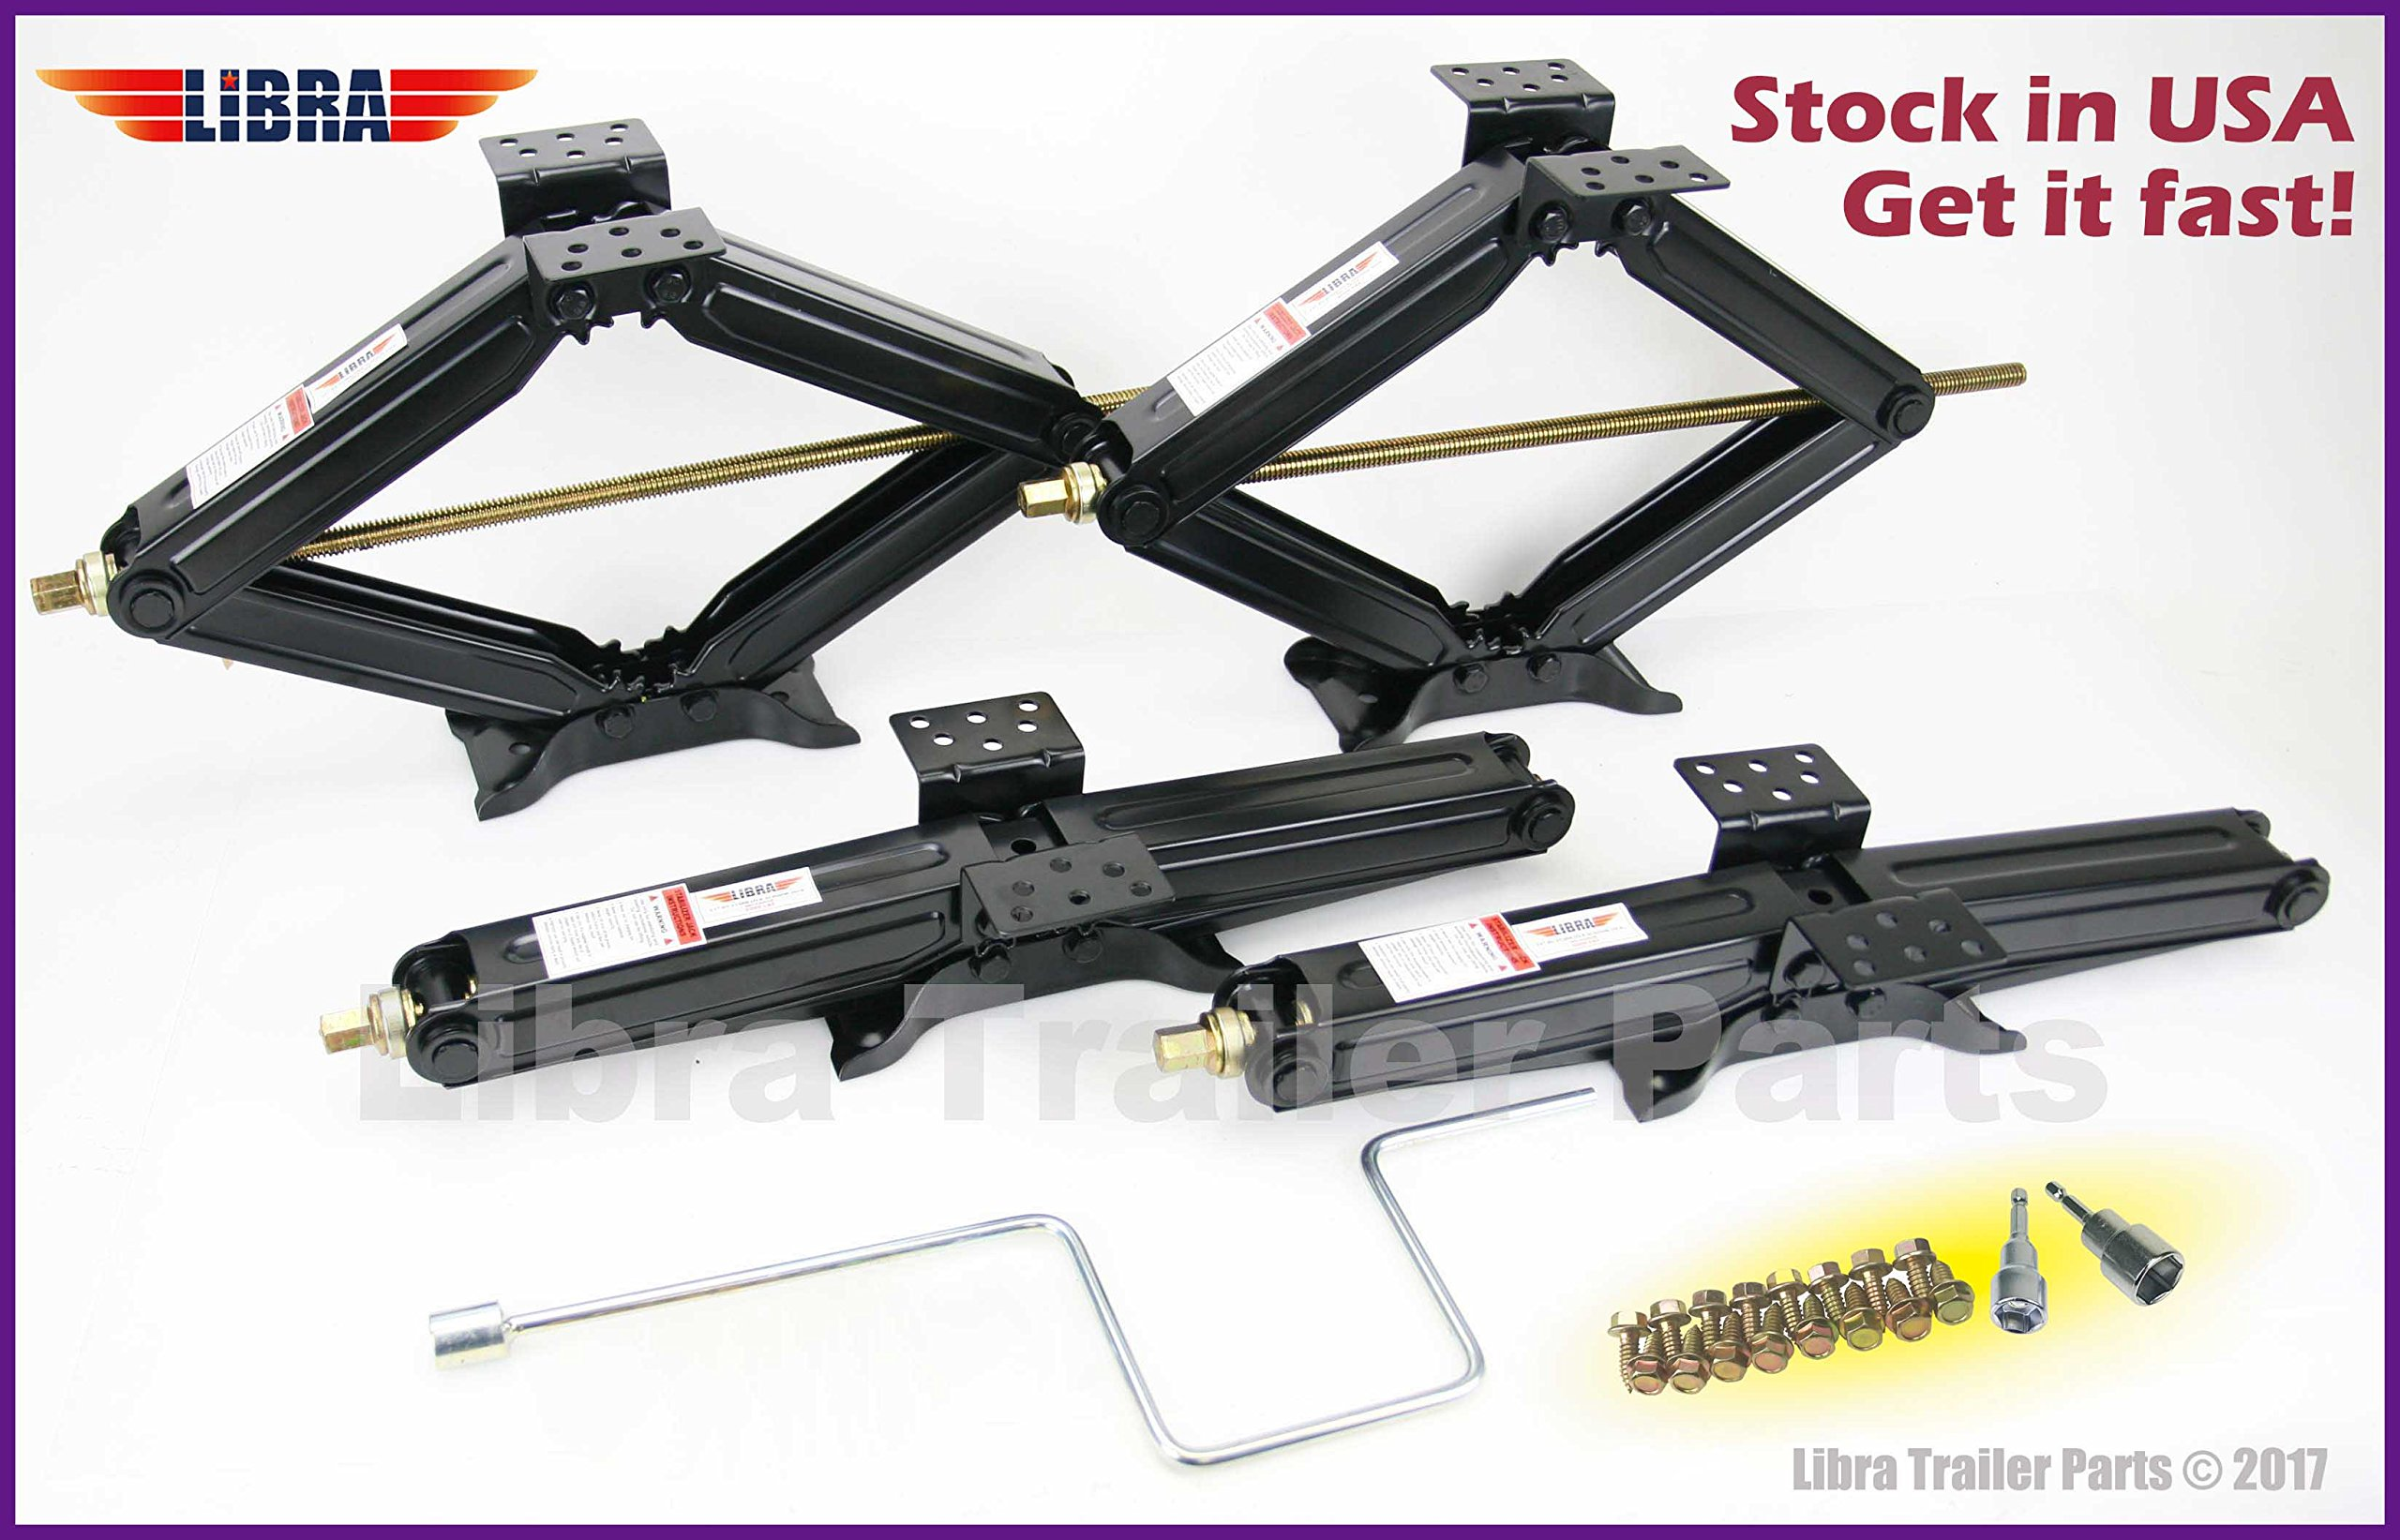 Set of 4 5000 lb 24'' RV Trailer Stabilizer Leveling Scissor Jacks w/handle & Power Drill Socket -Model# 26020